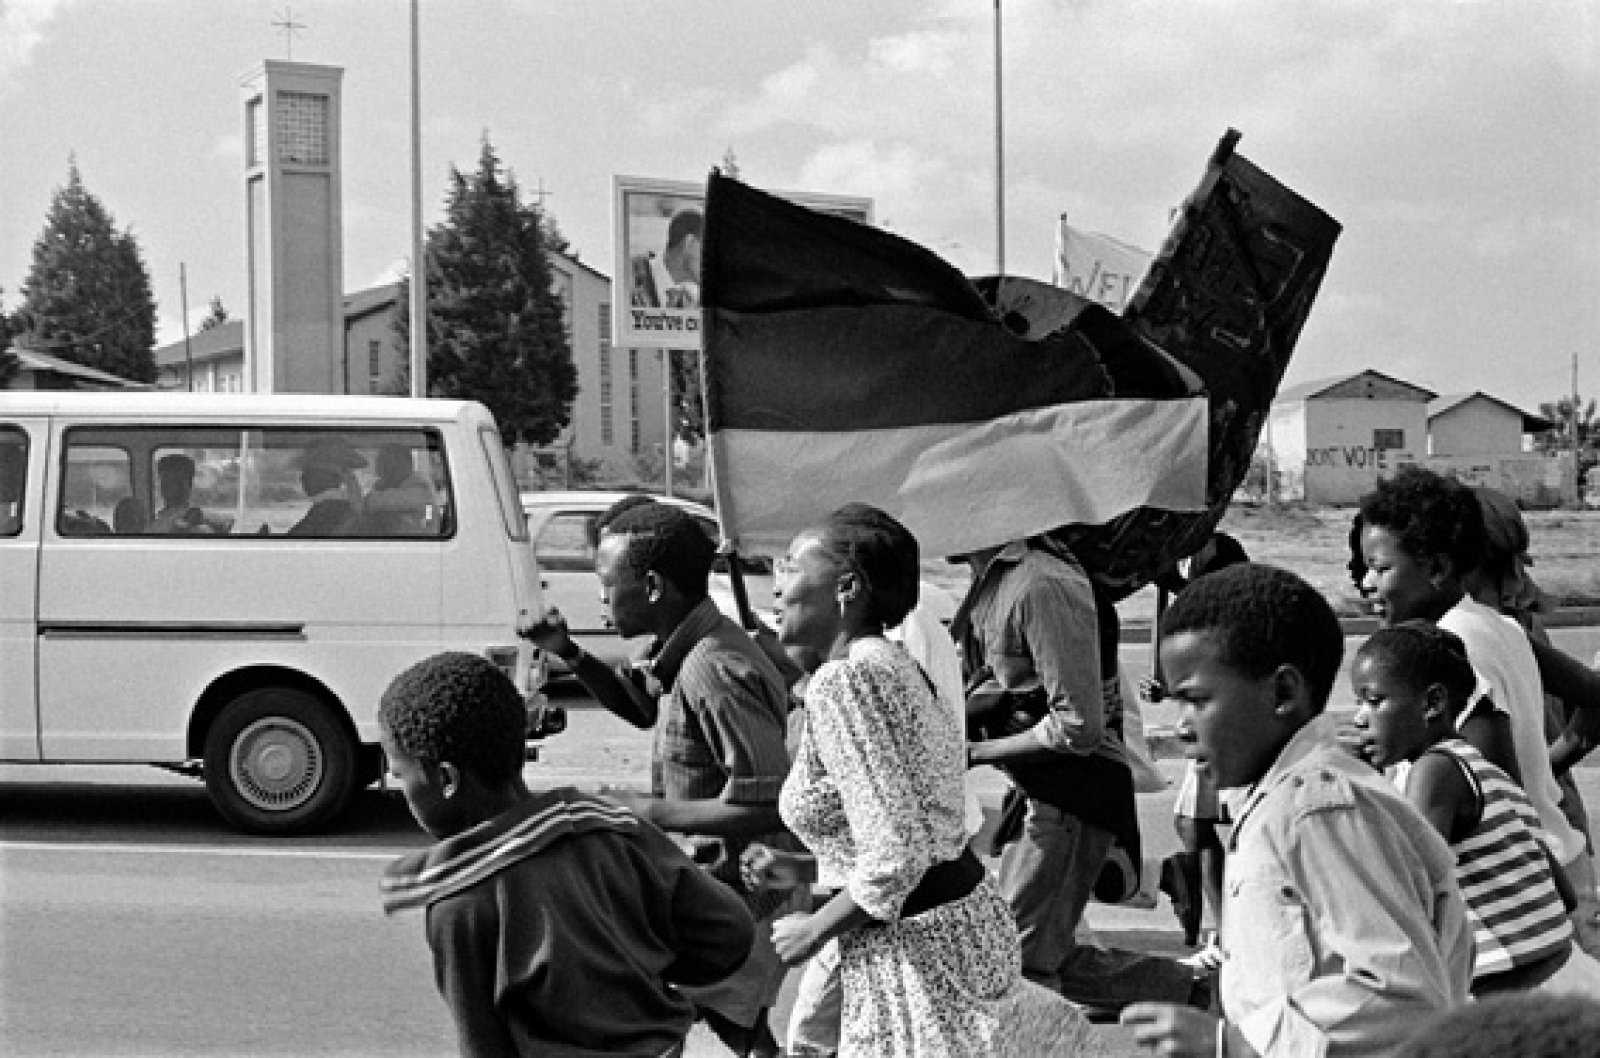 From the Series Politics. Photograph by Santu Mofokeng (b.1956) © Santu Mofokeng Foundation. Image courtesy of Lunetta Bartz, MAKER, Johannesburg and Steidl GmbH.